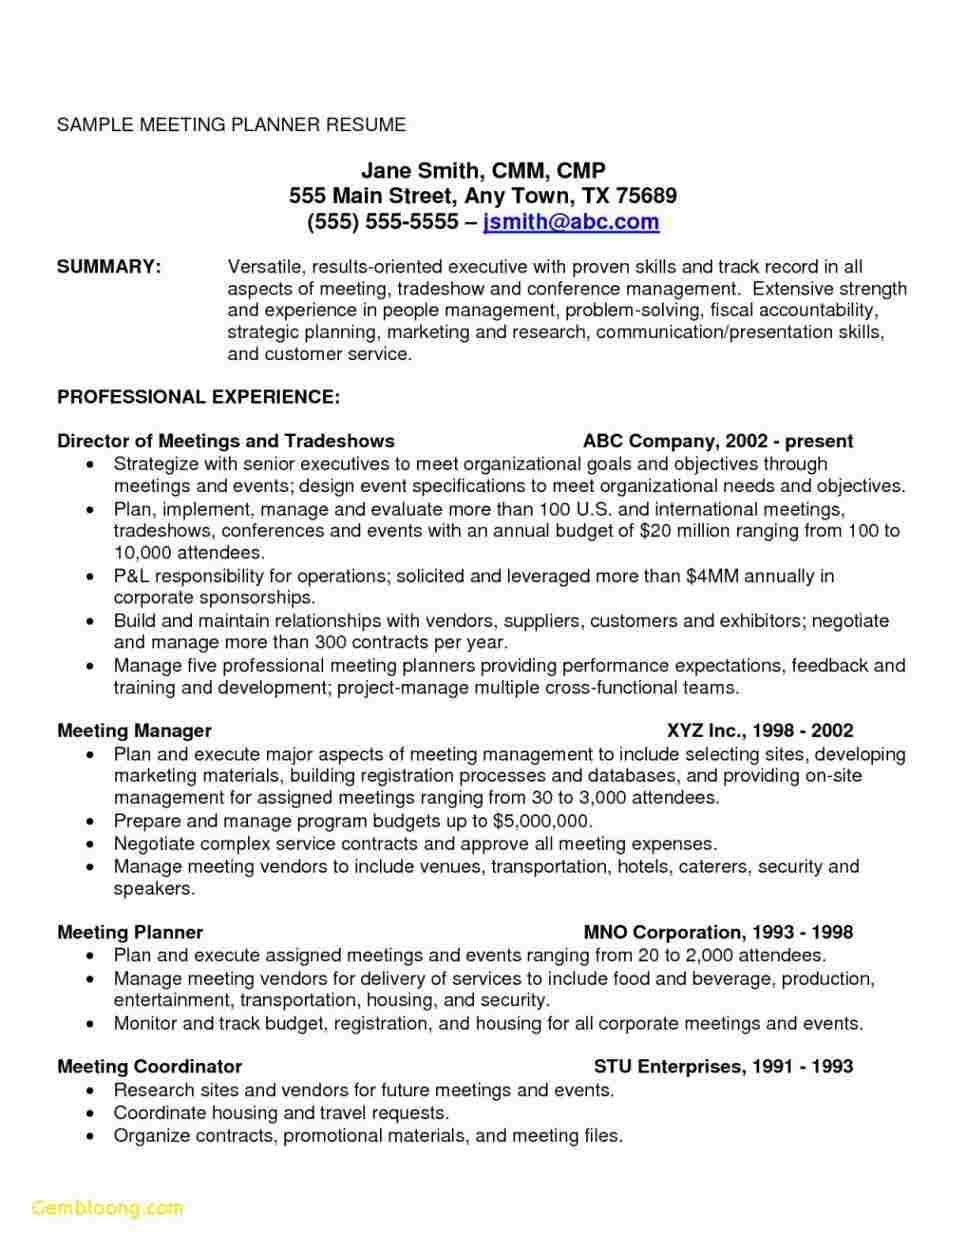 cool collection of sample resume onsite experience meeting planner event planning jobs Resume Meeting Coordinator Resume